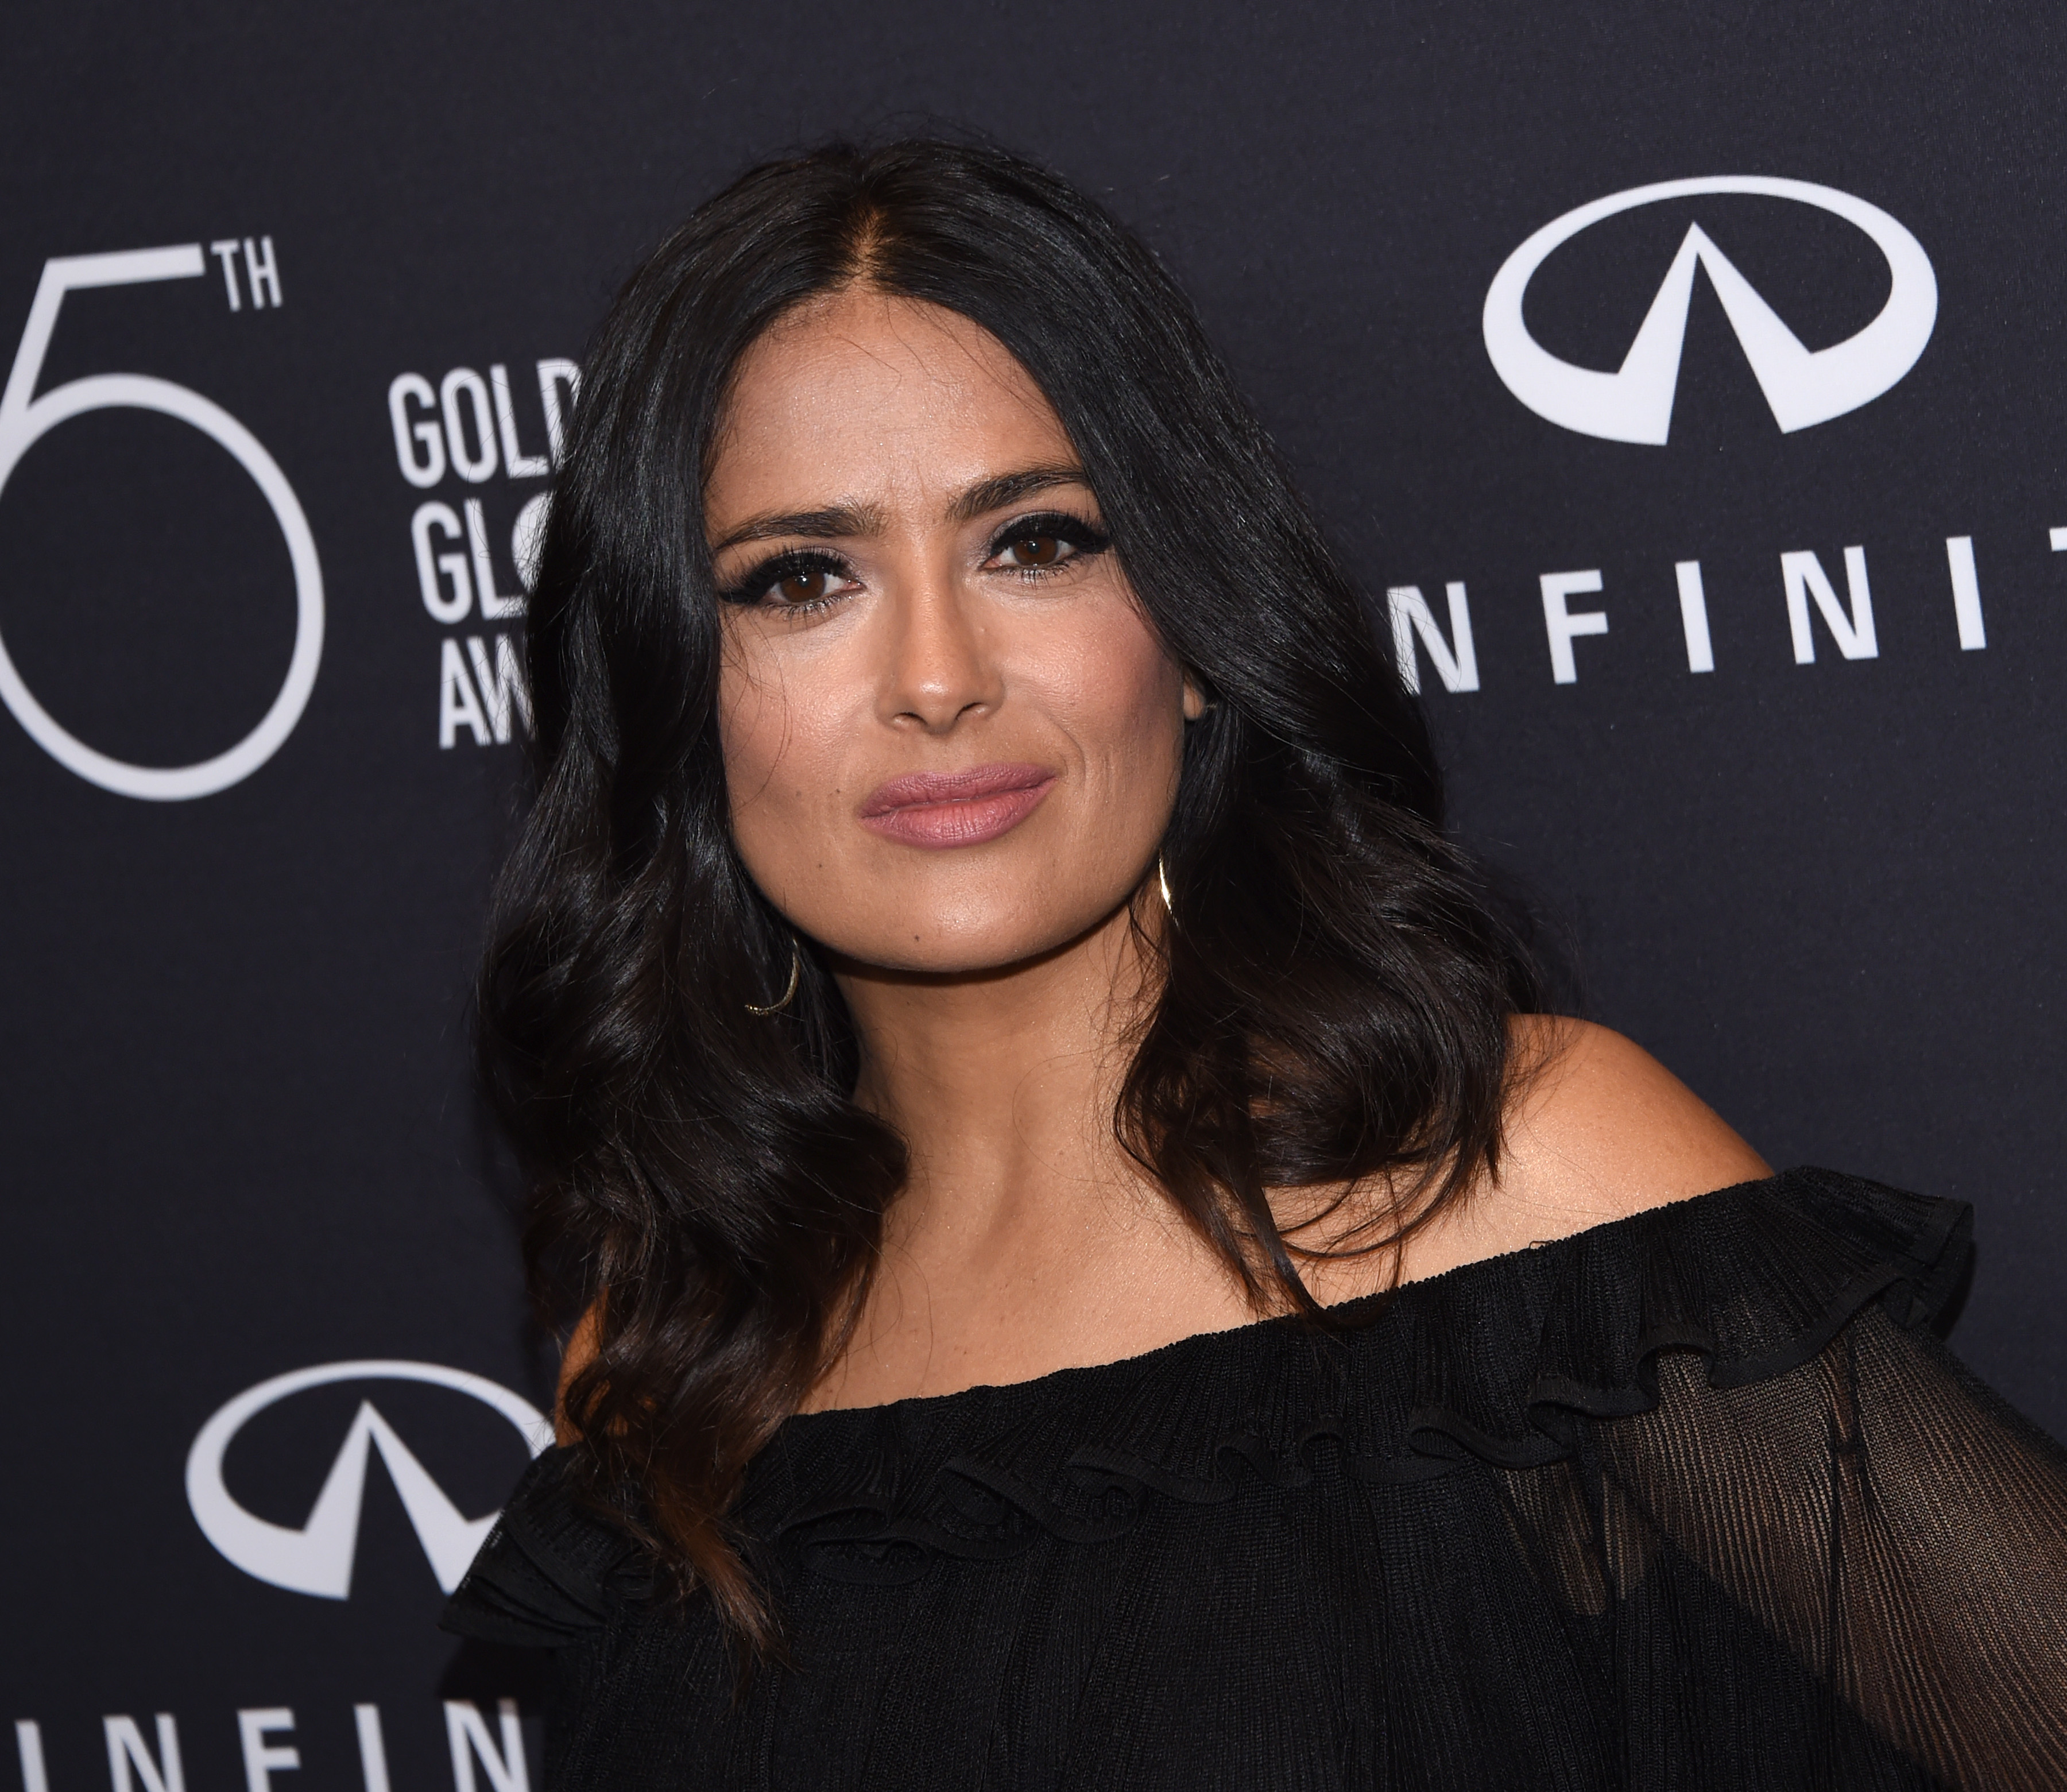 Weinstein threatened to kill me: Salma Hayek